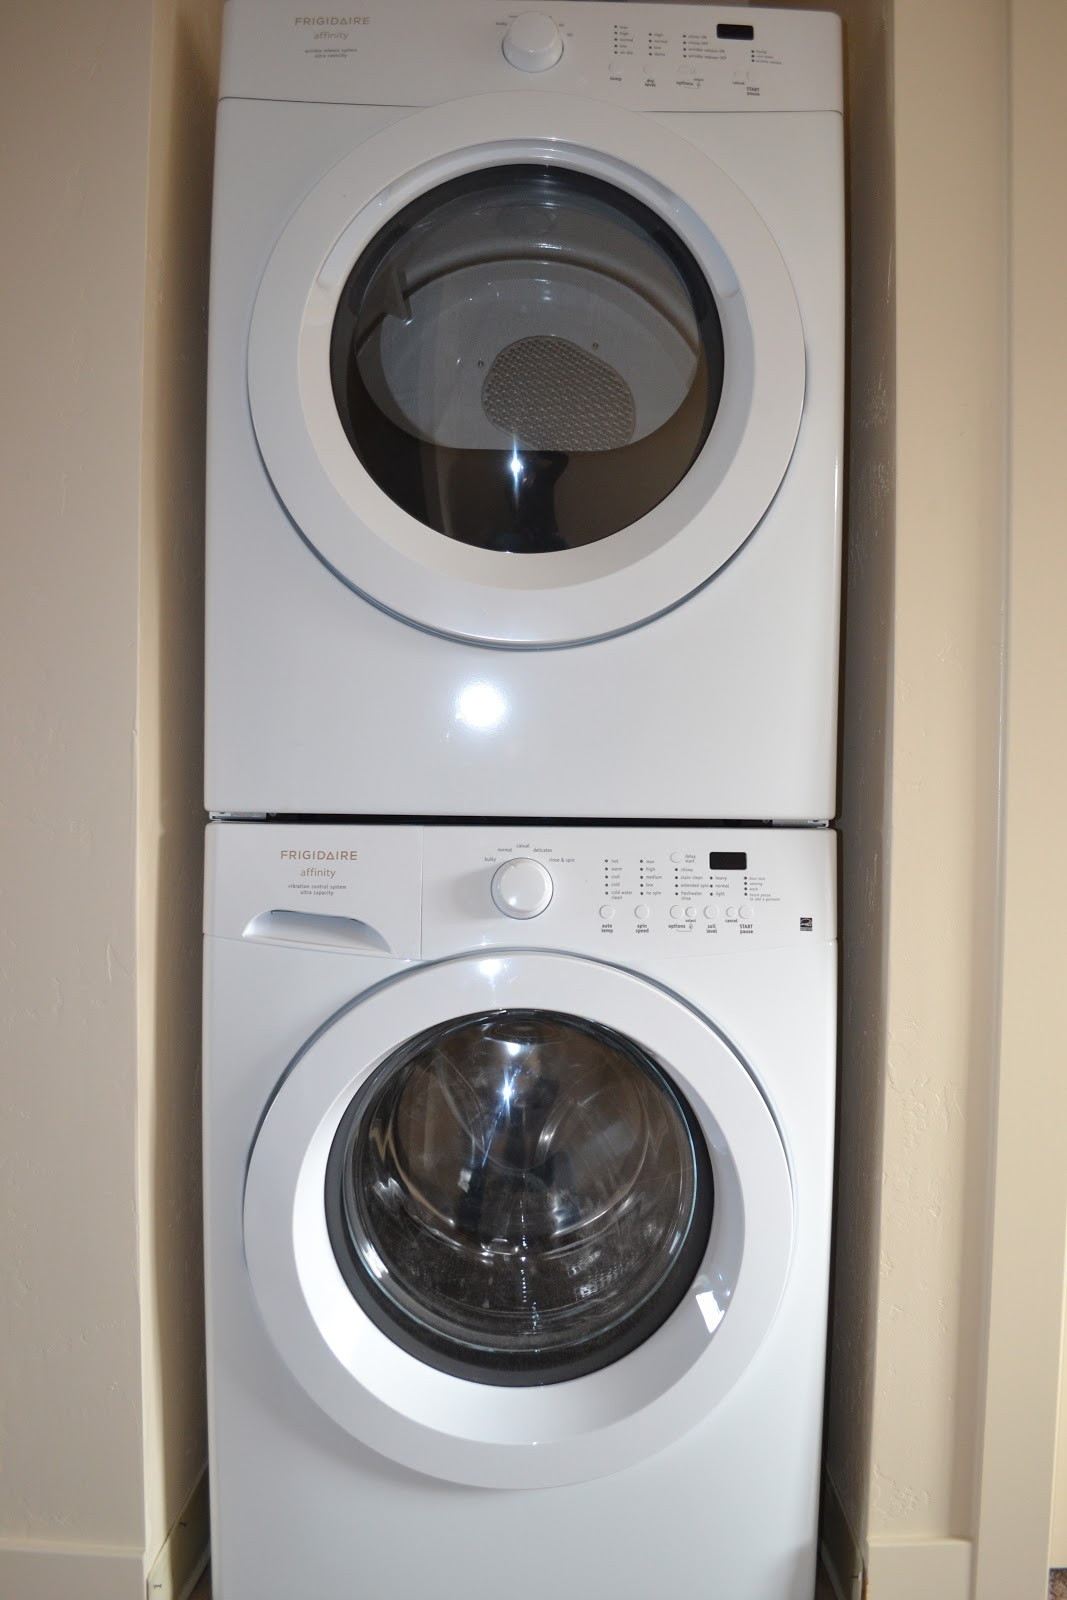 Apartment Size Washer Dryer Sets. Compact Washer Dryer Combos For ...